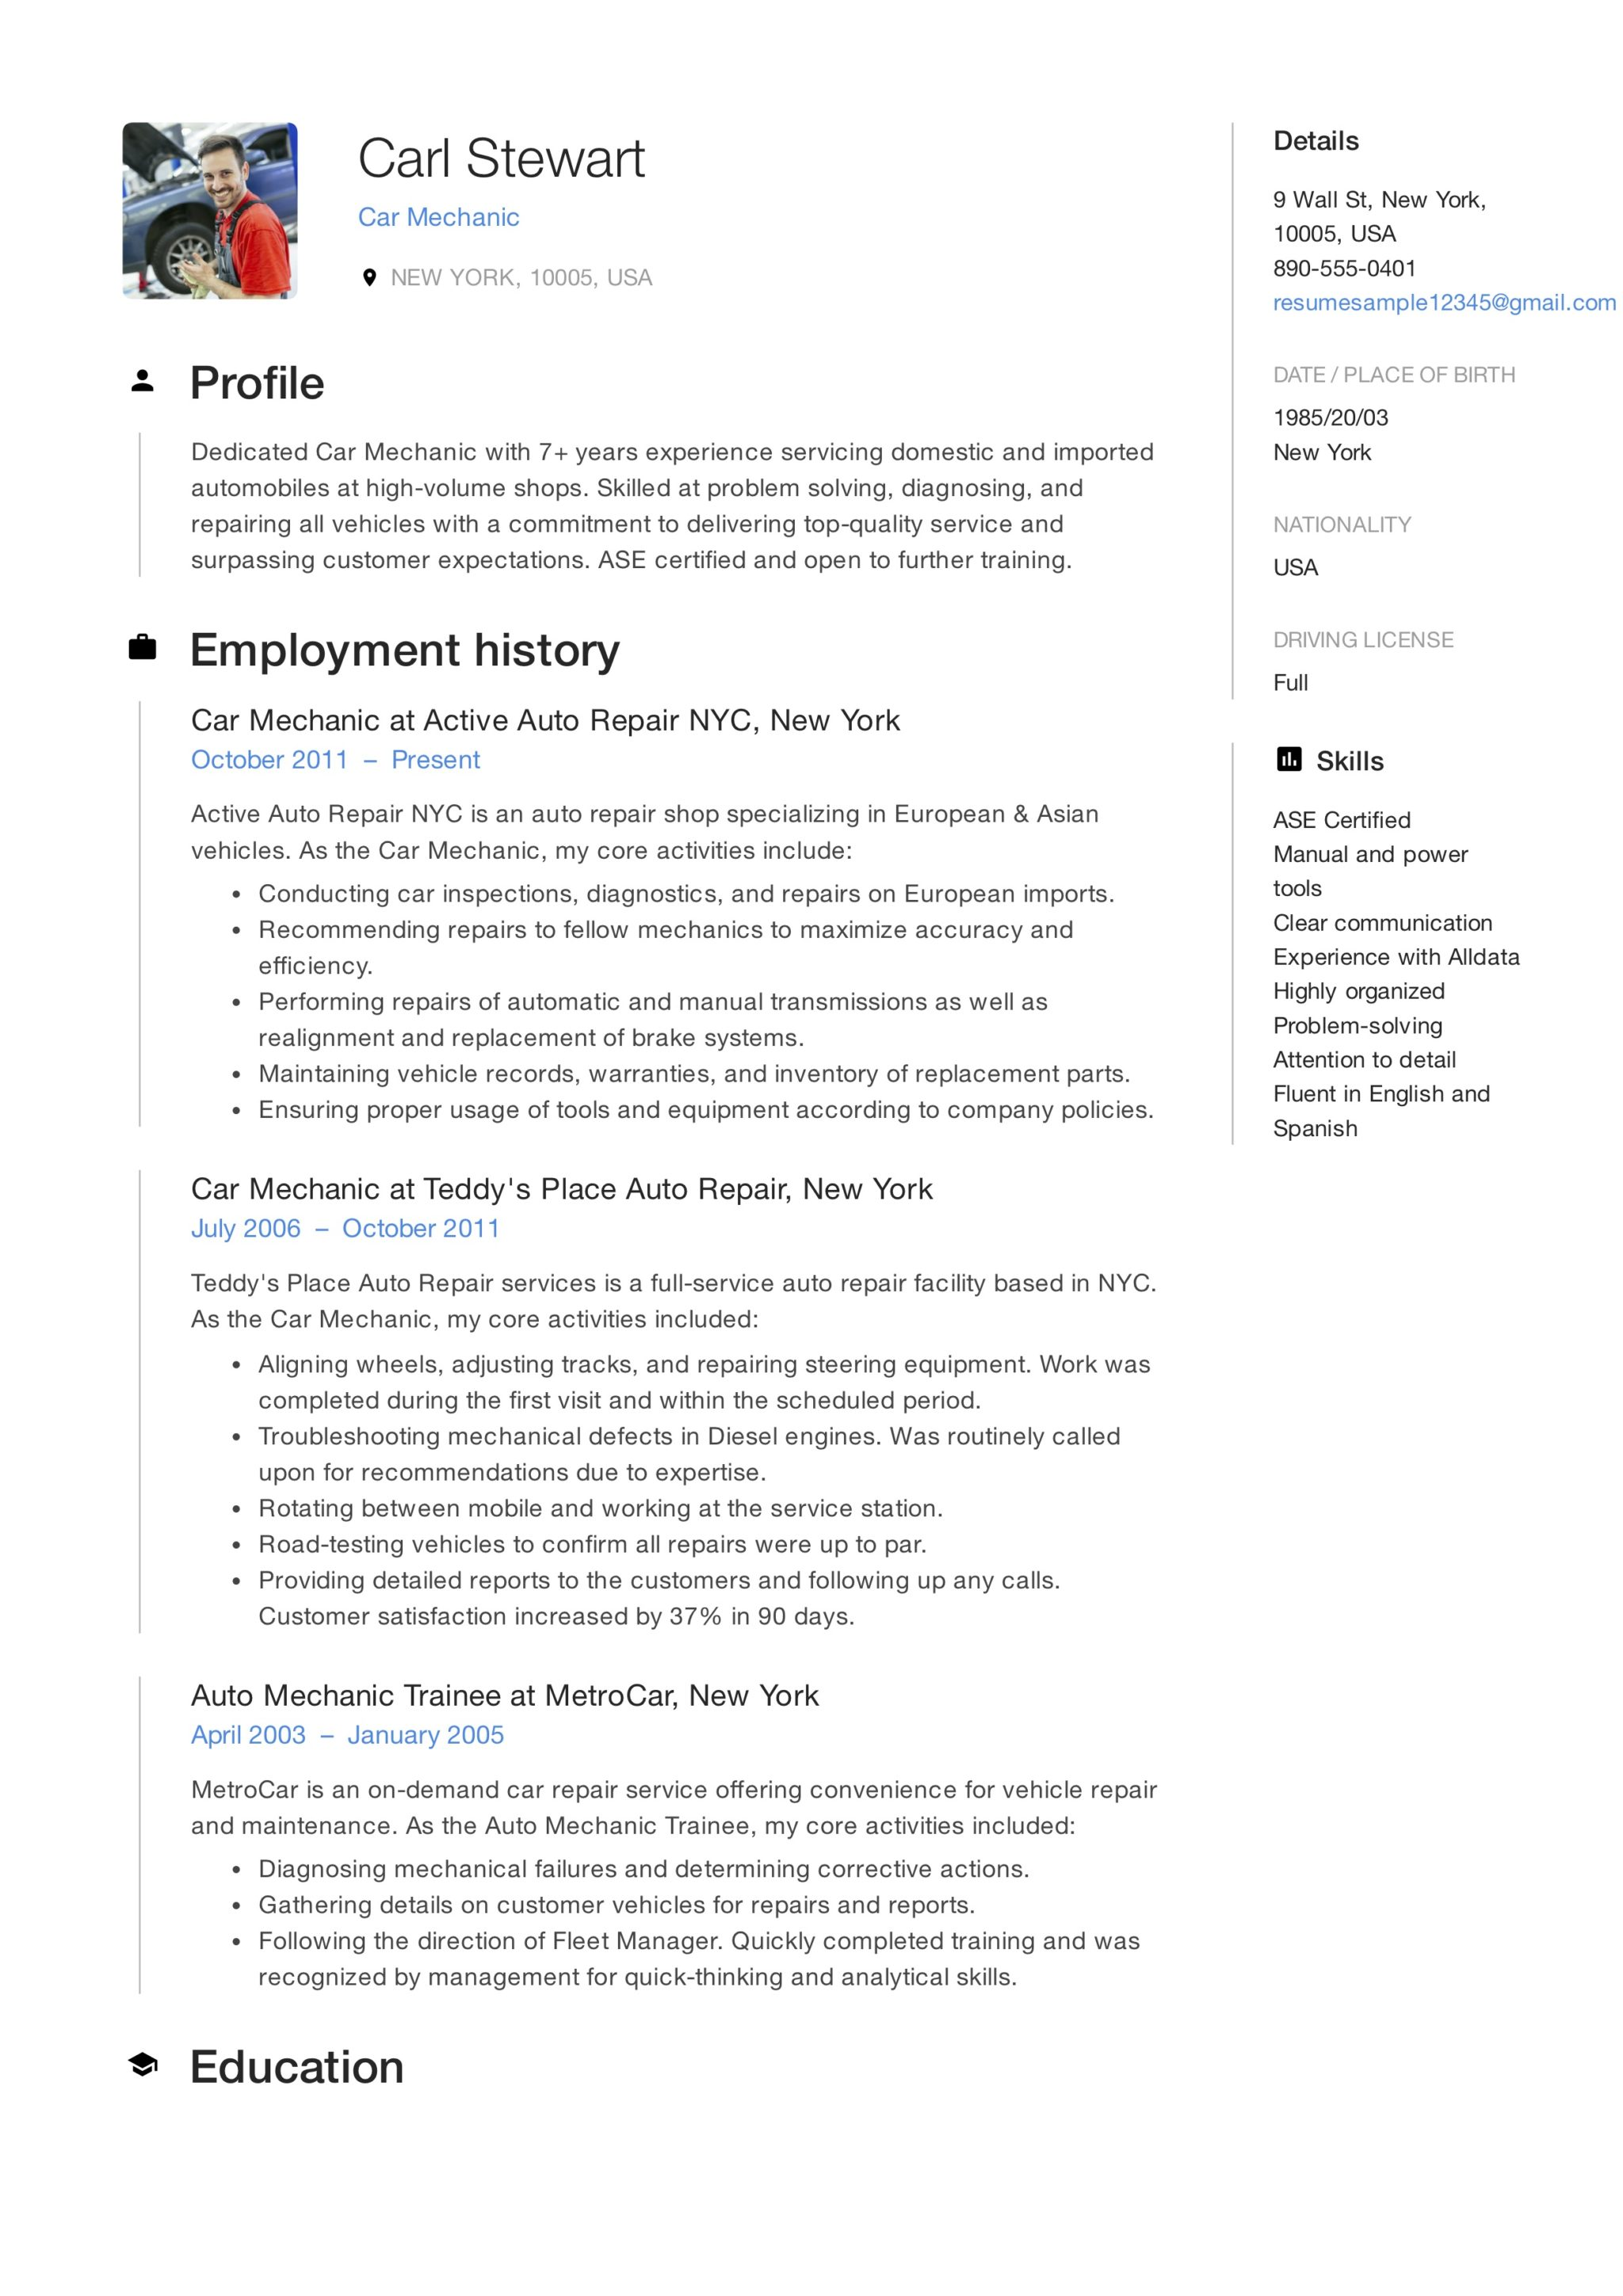 12 Car Mechanic Resume Sample(s) - 2018 (Free Downloads)